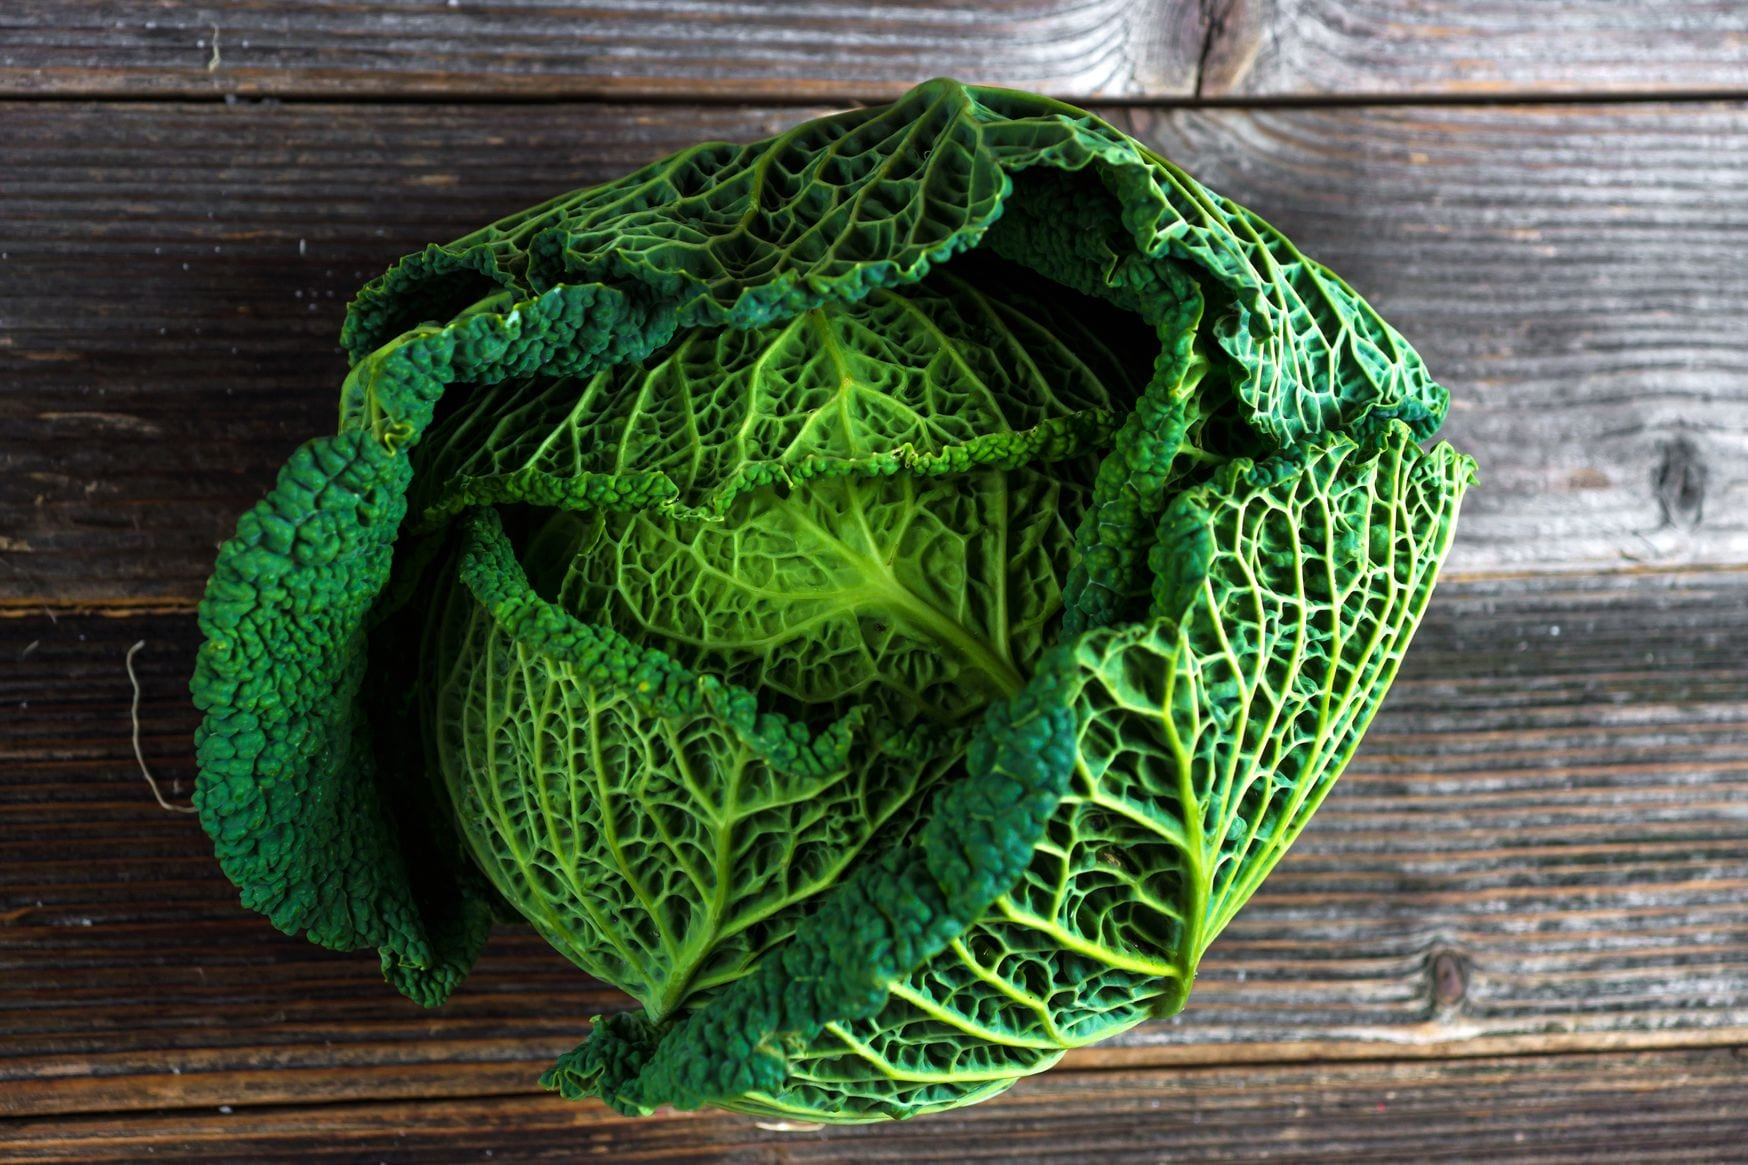 Savoy Cabbage A Tasty Delight Both Cooked And Raw Freshmagazine